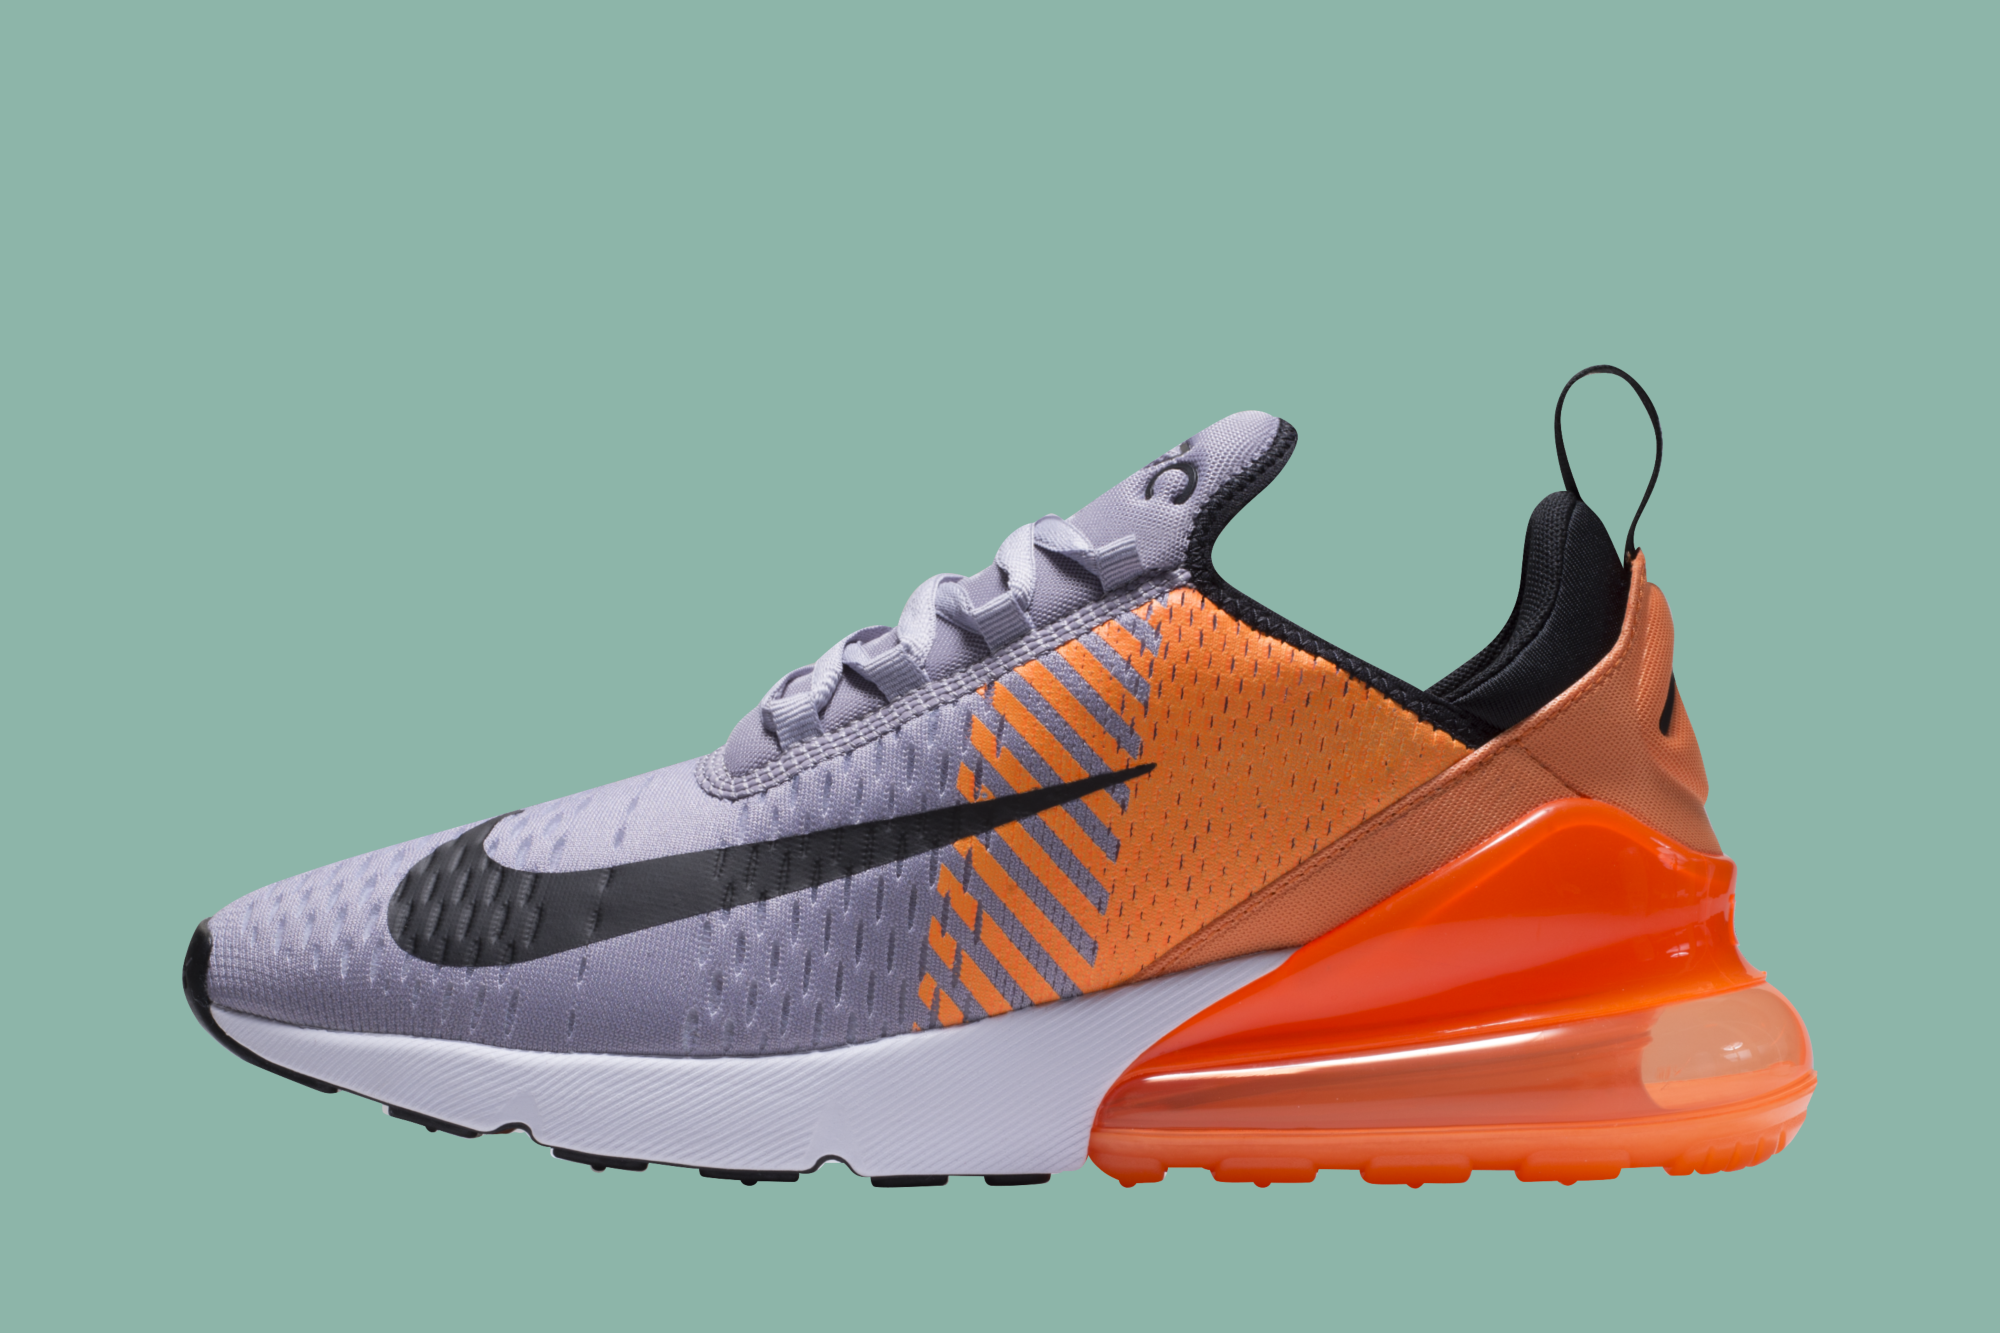 factory price a93df c579d Nike iD Air Max 270 in Mercurial Styles for World Cup 2018 - EU Kicks  Sneaker Magazine